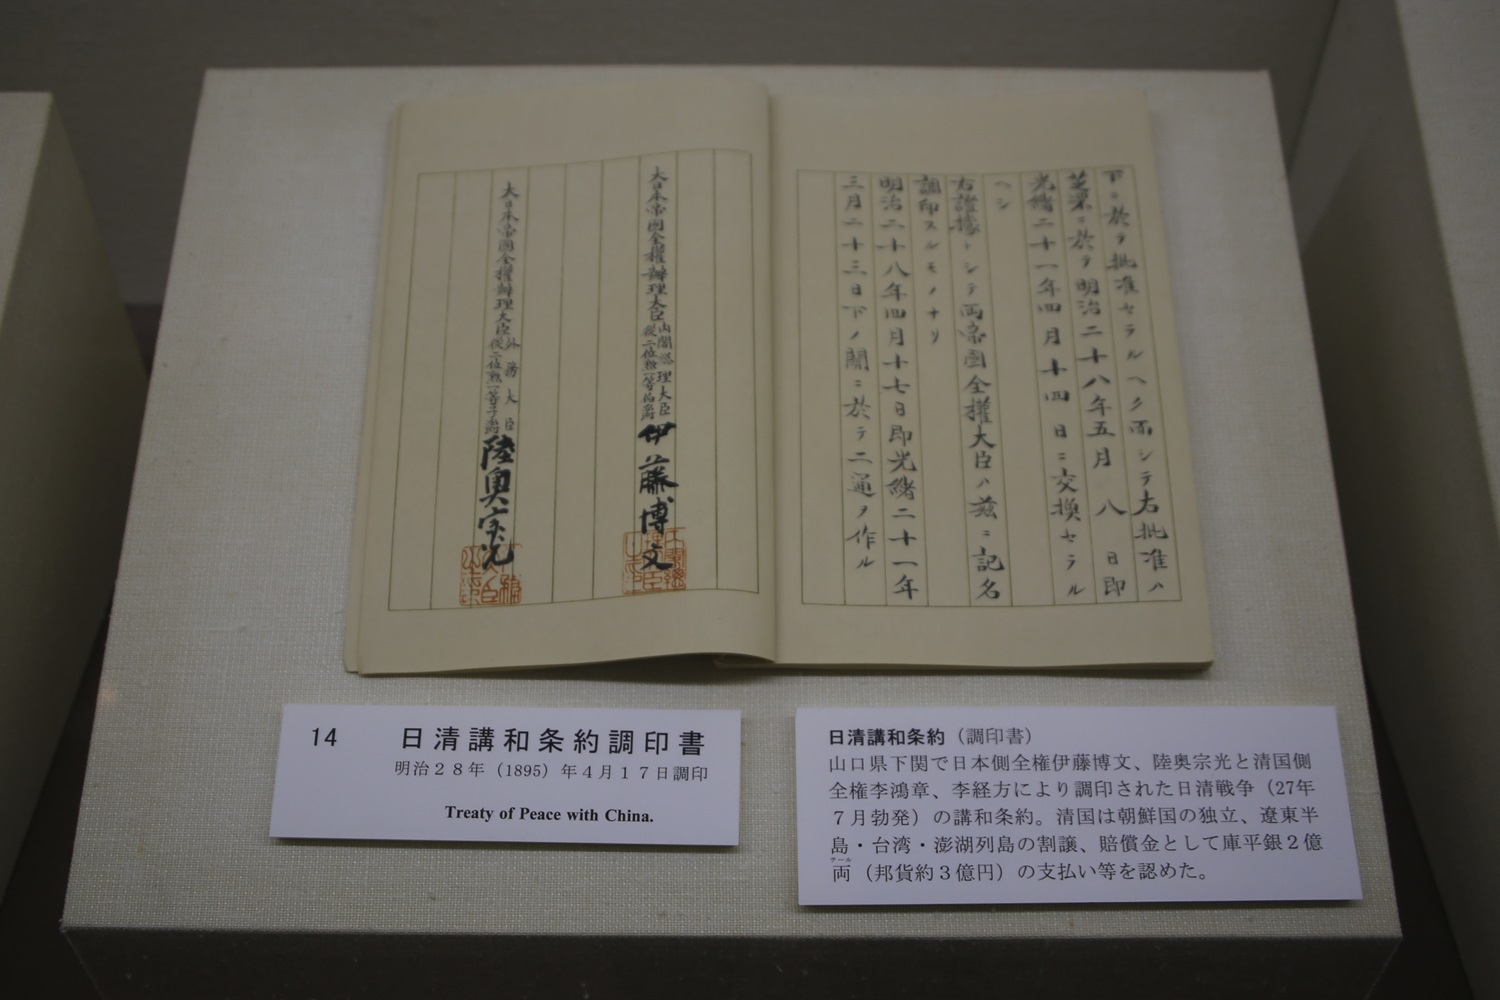 麻布 外交史料館別館 Ministry of Foreign Affairs of Japan (3) Treaty of peace with china